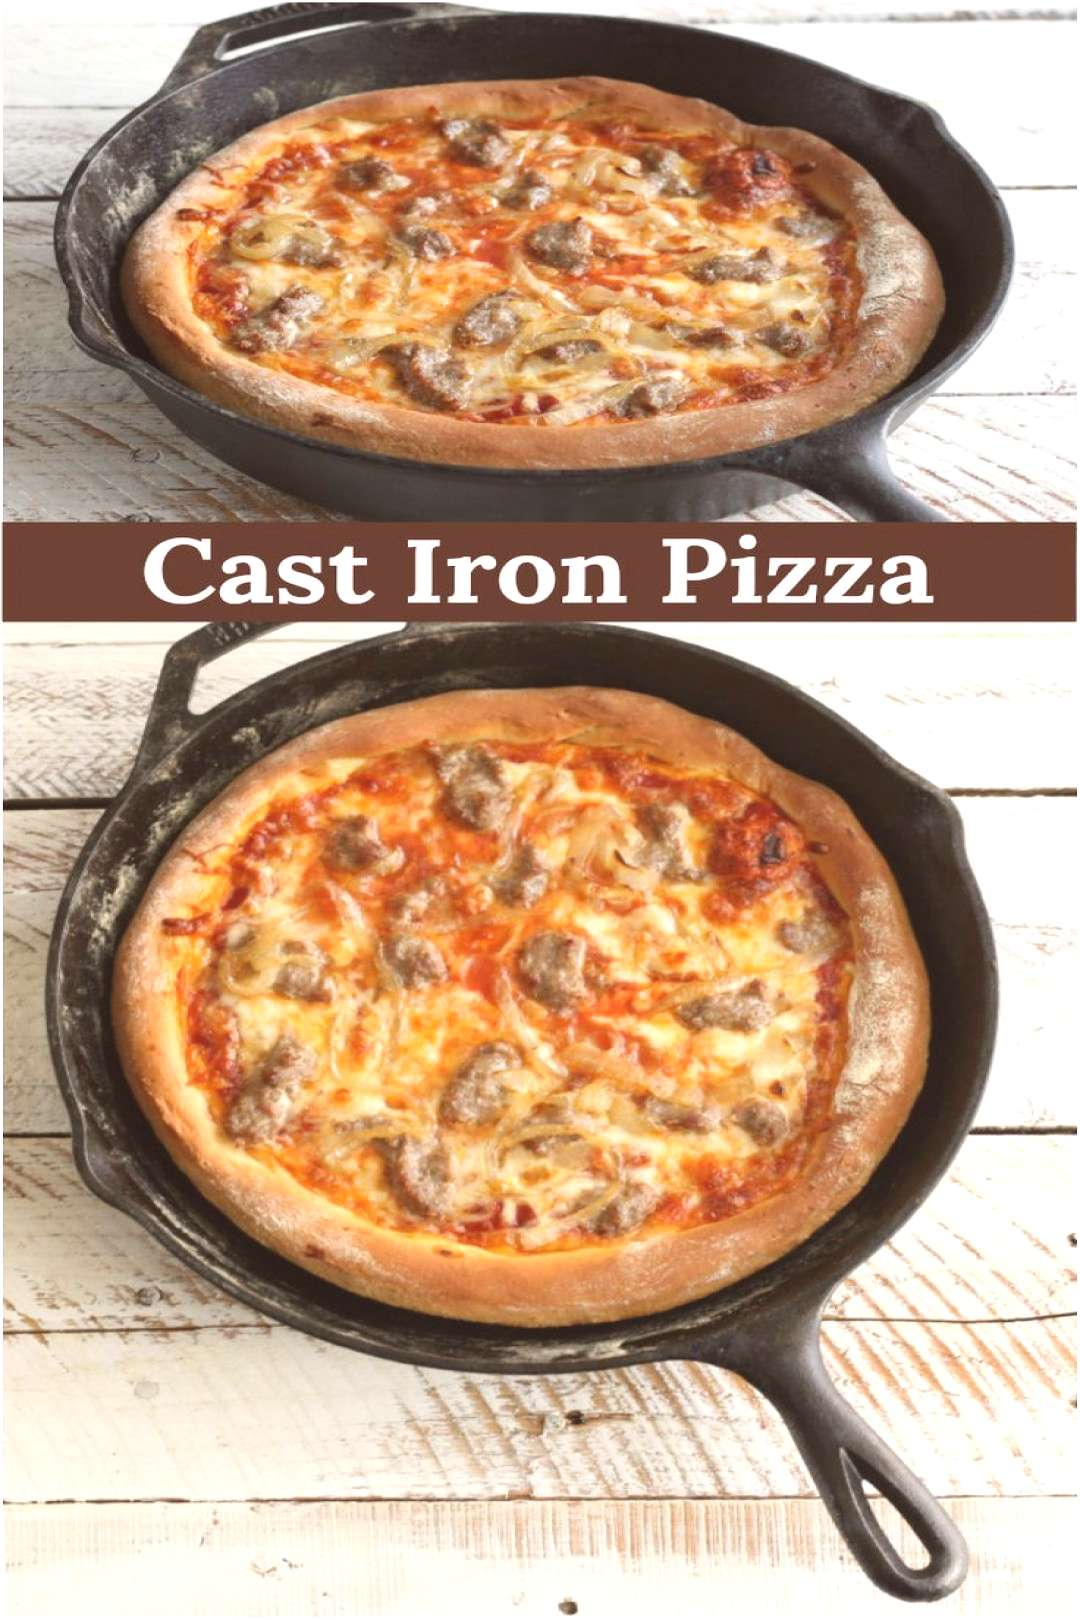 Homemade buttery, thick and chewy pizza dough baked in a cast iron skillet.